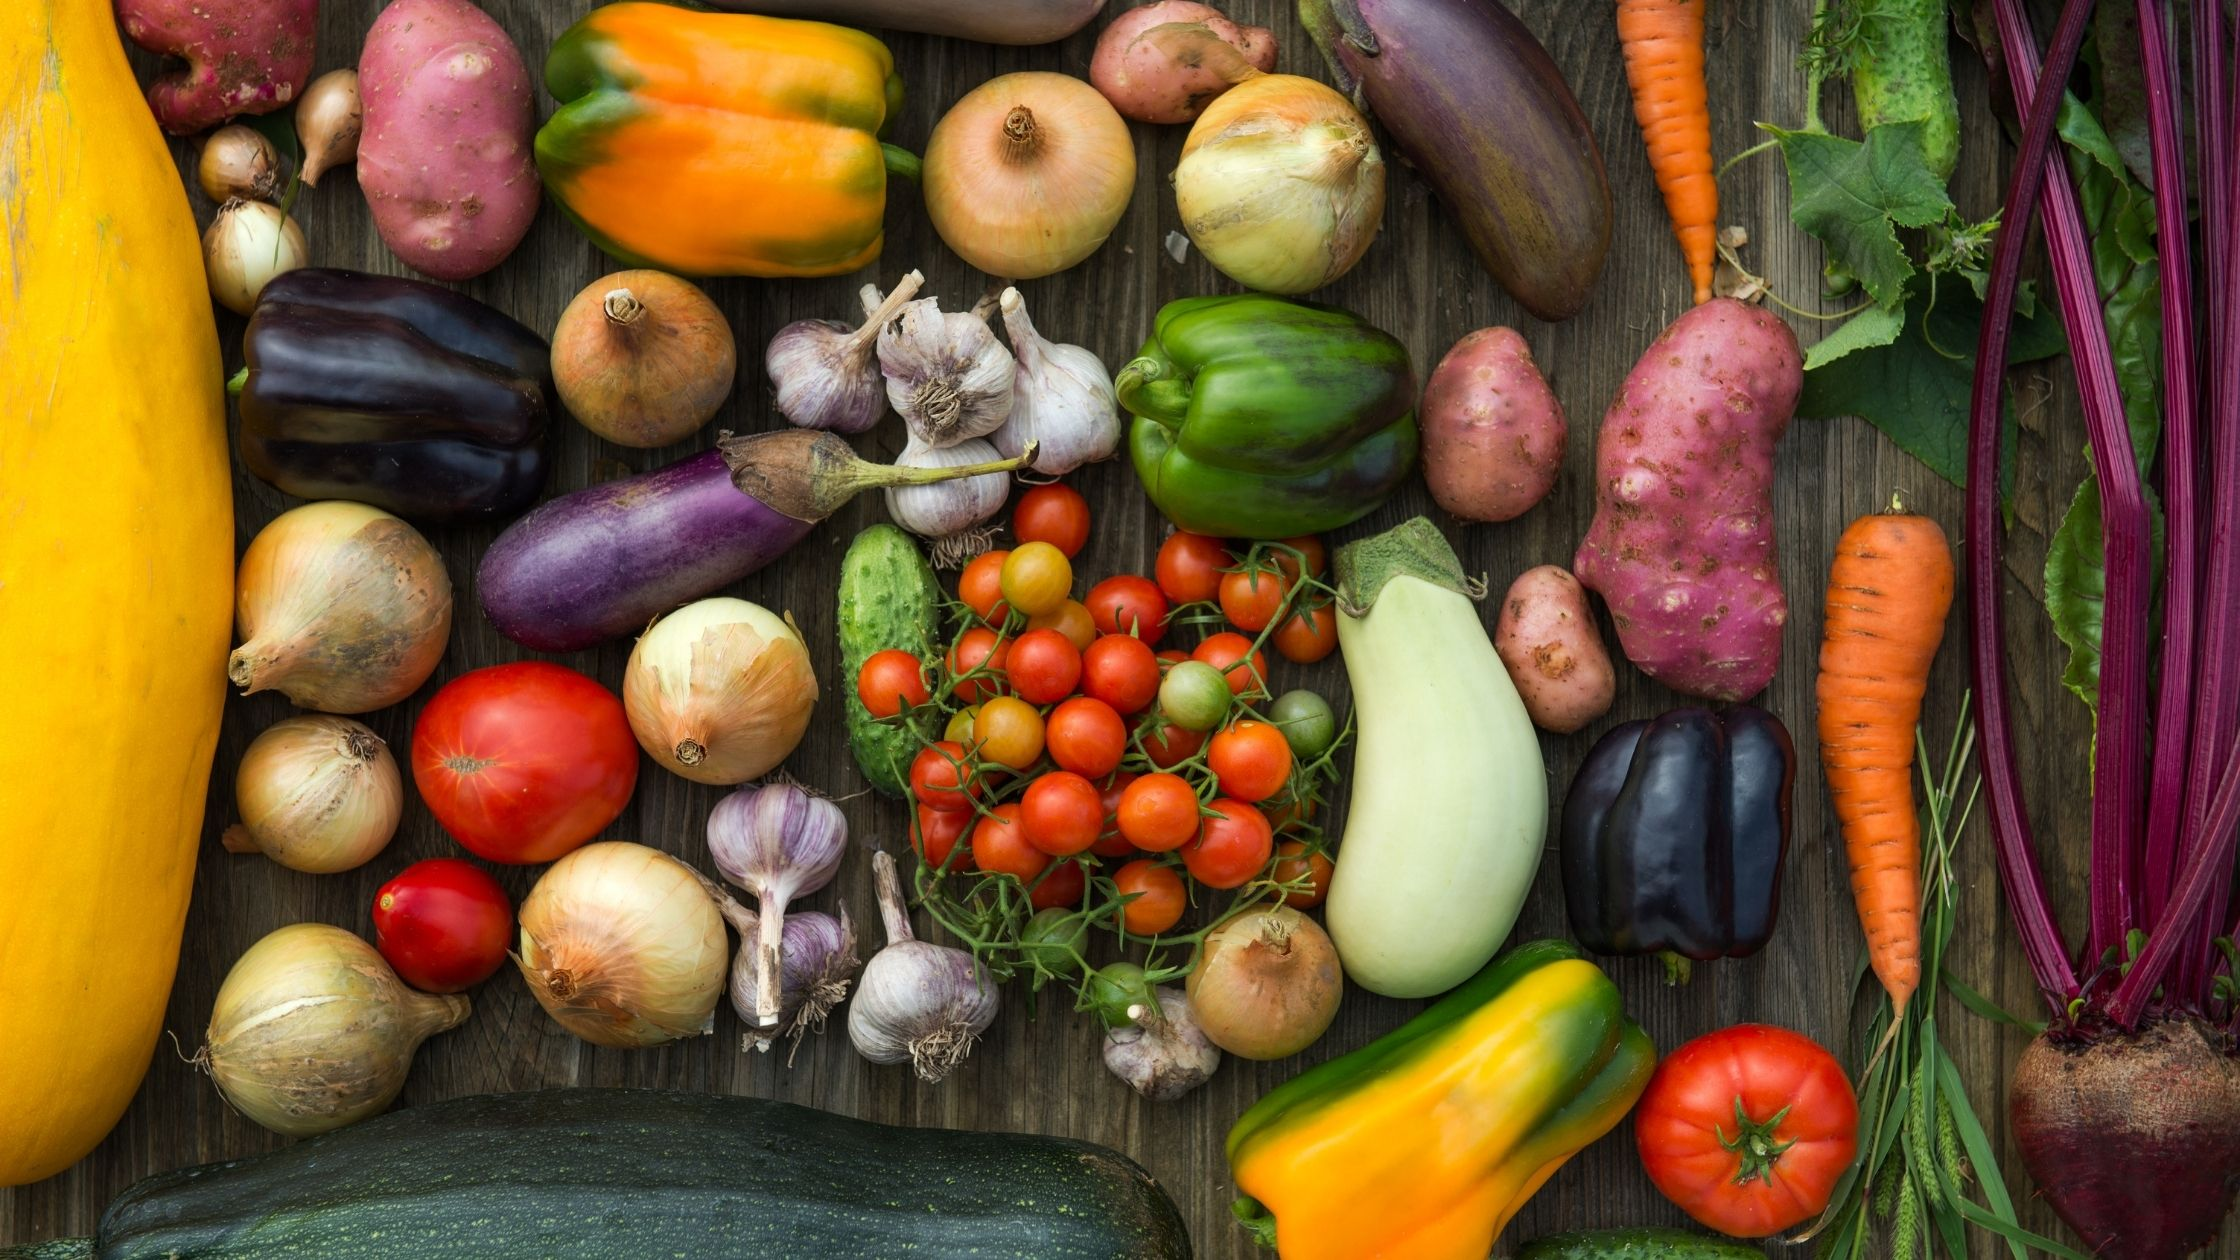 The choice is never easy: Conventional vs. organic